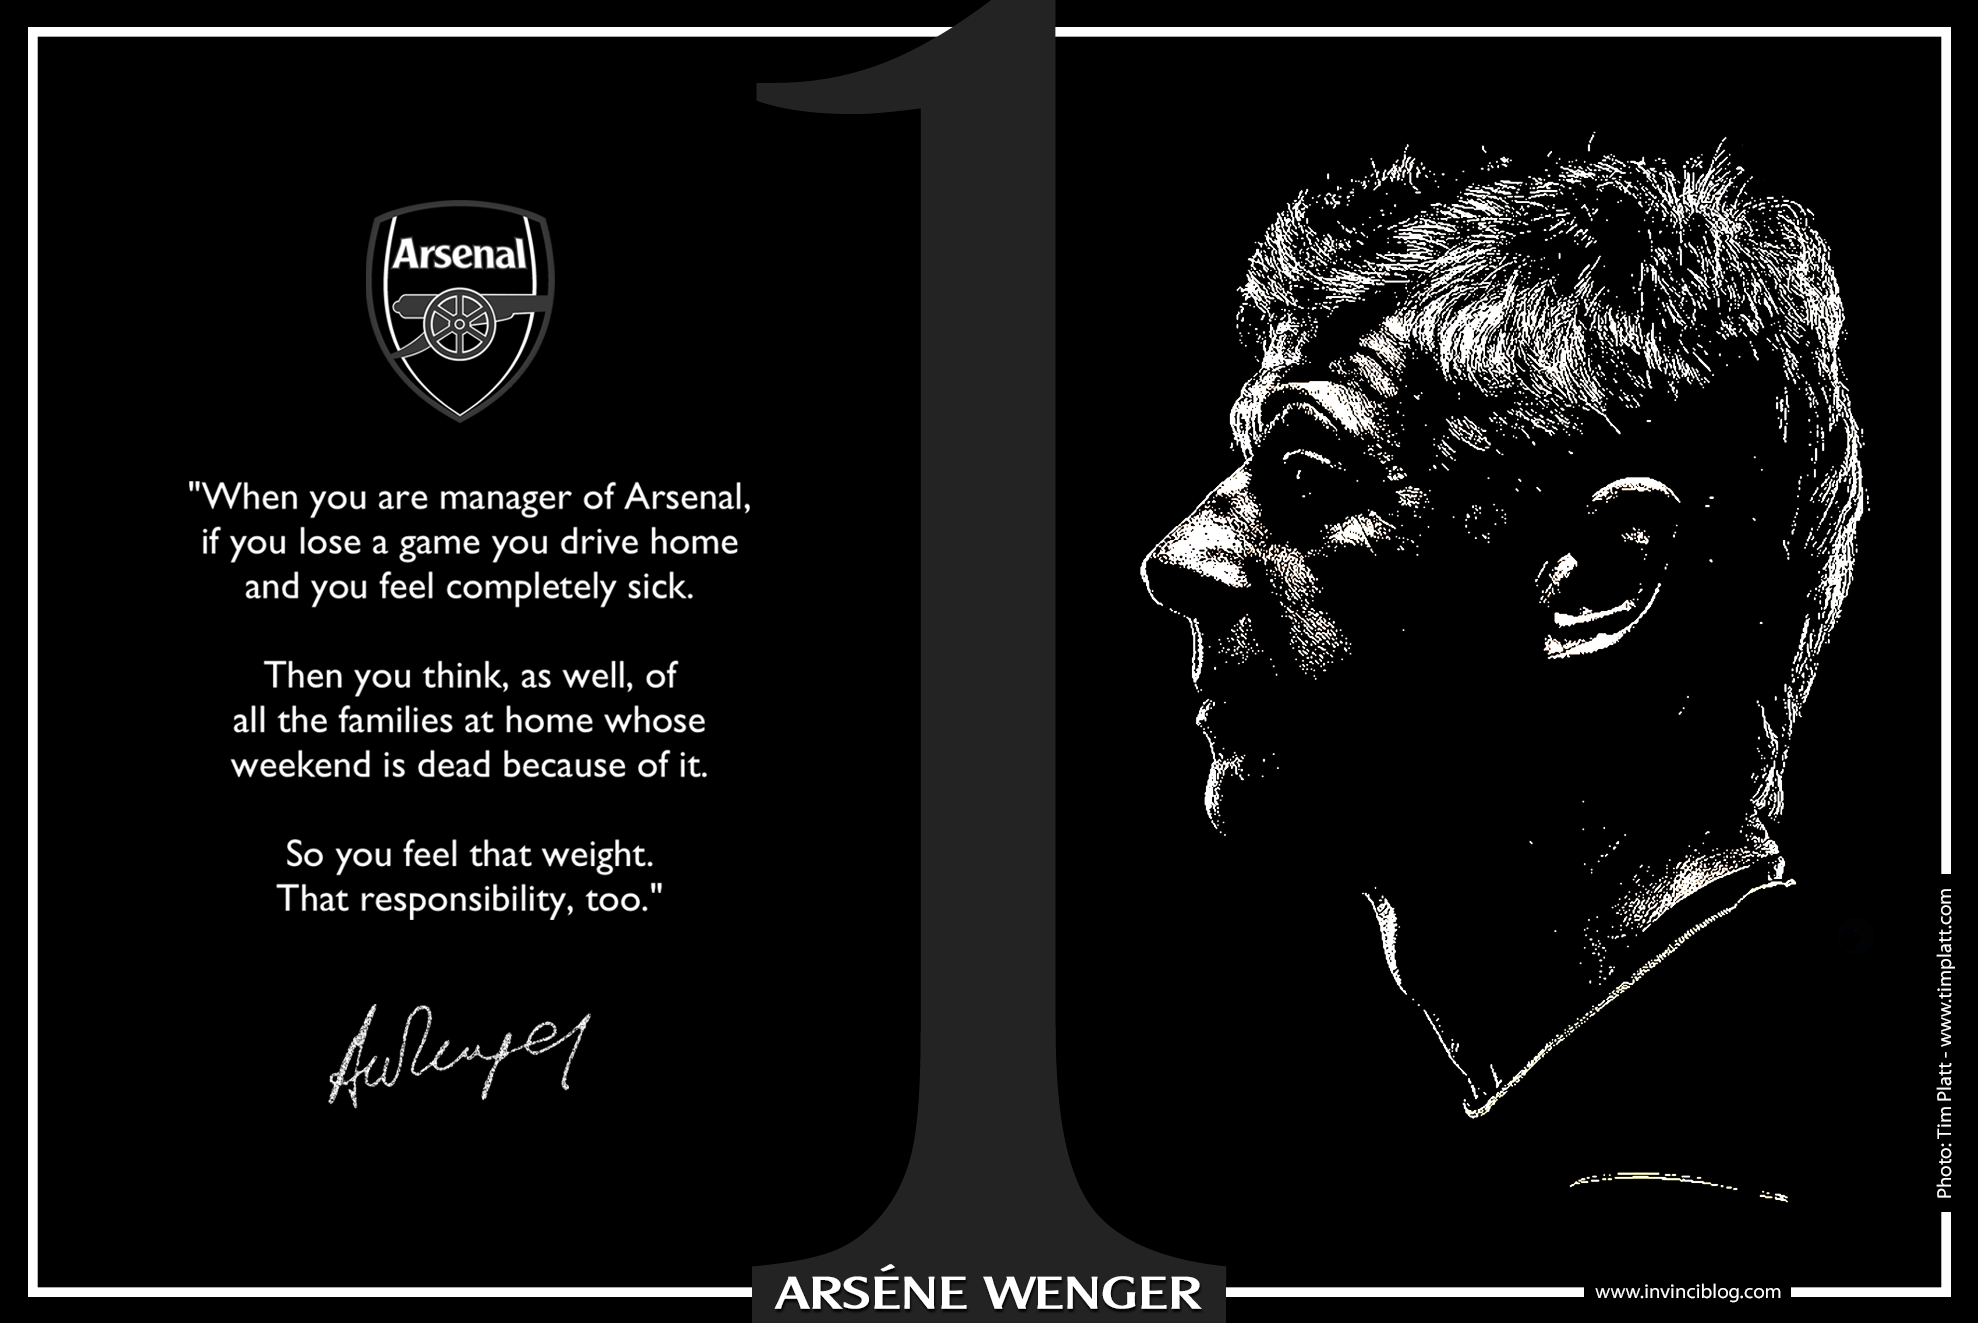 Wenger - One Of Us